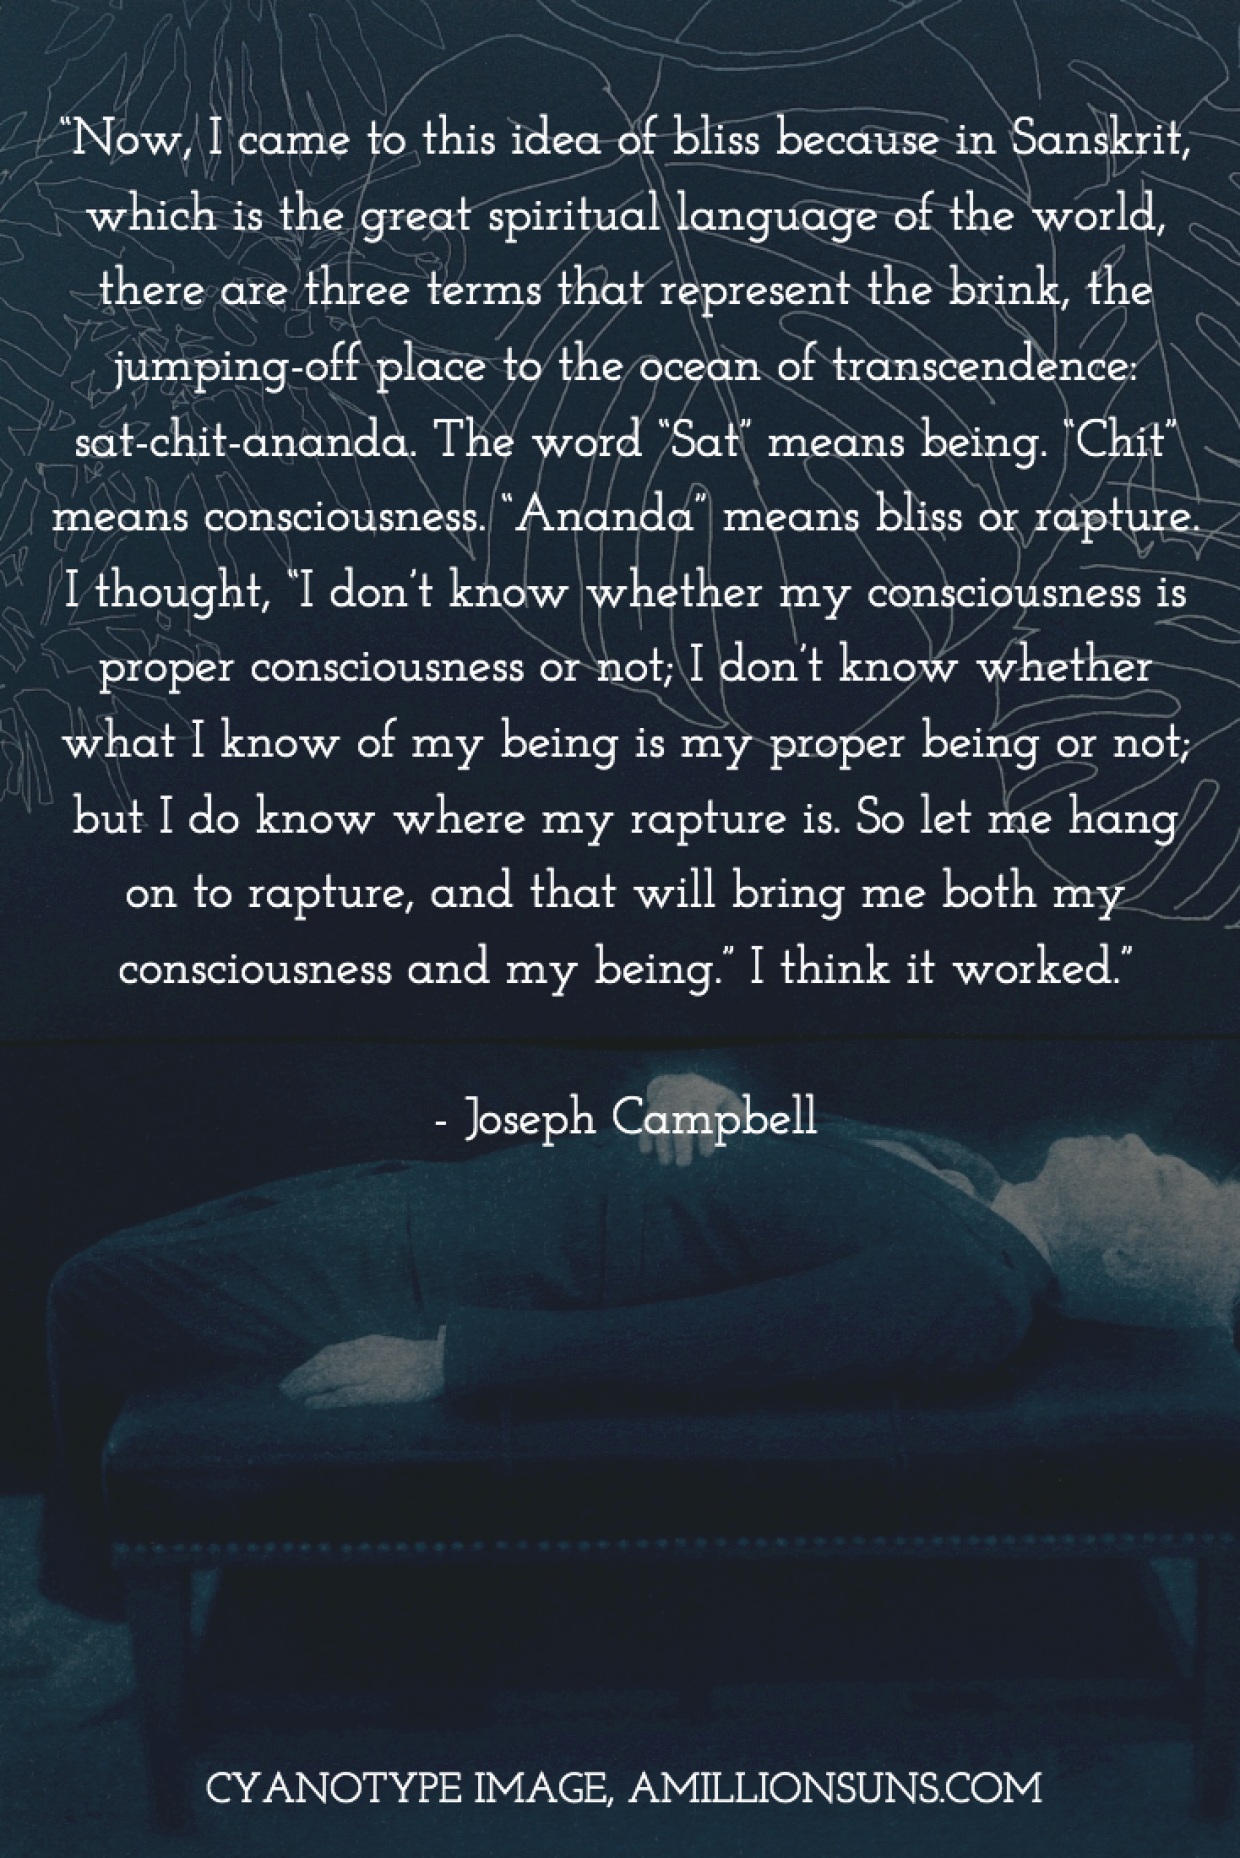 Joseph Campbell quote origin of follow your bliss sat chit ananda